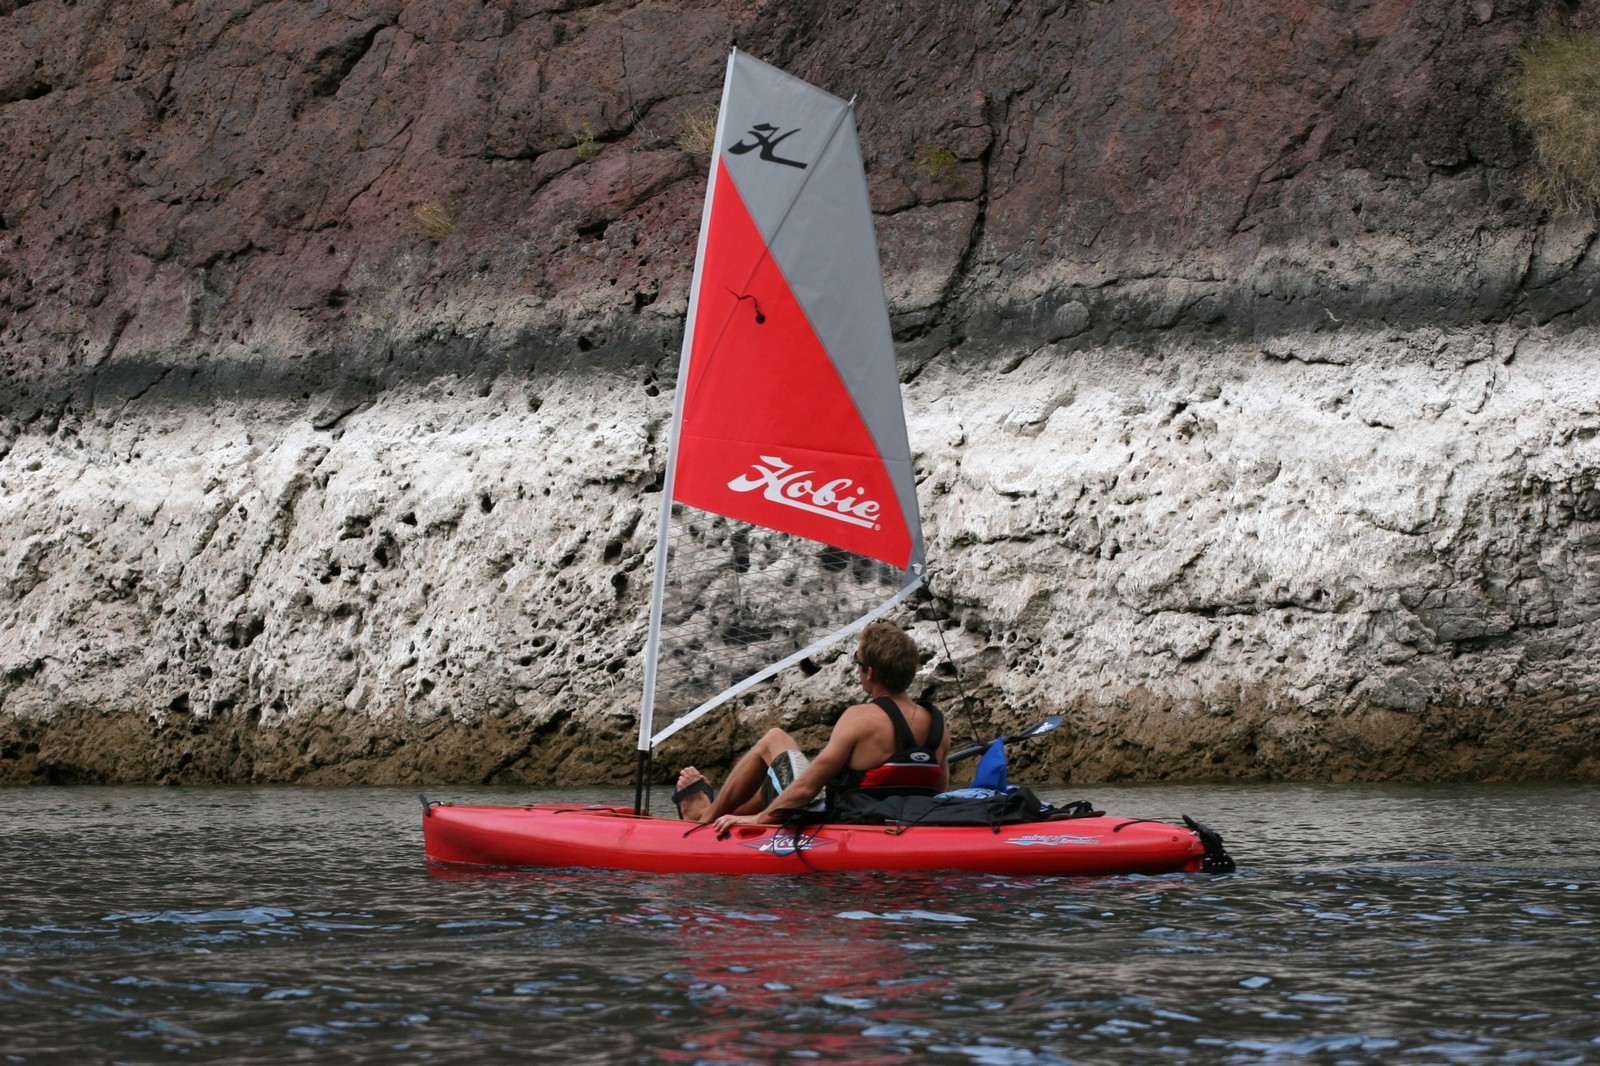 The Sail Kit Can Be Added To Many Different Hobie Mirage Kayak Or Pro Angler Models And It Makes Sailing Fun Easy